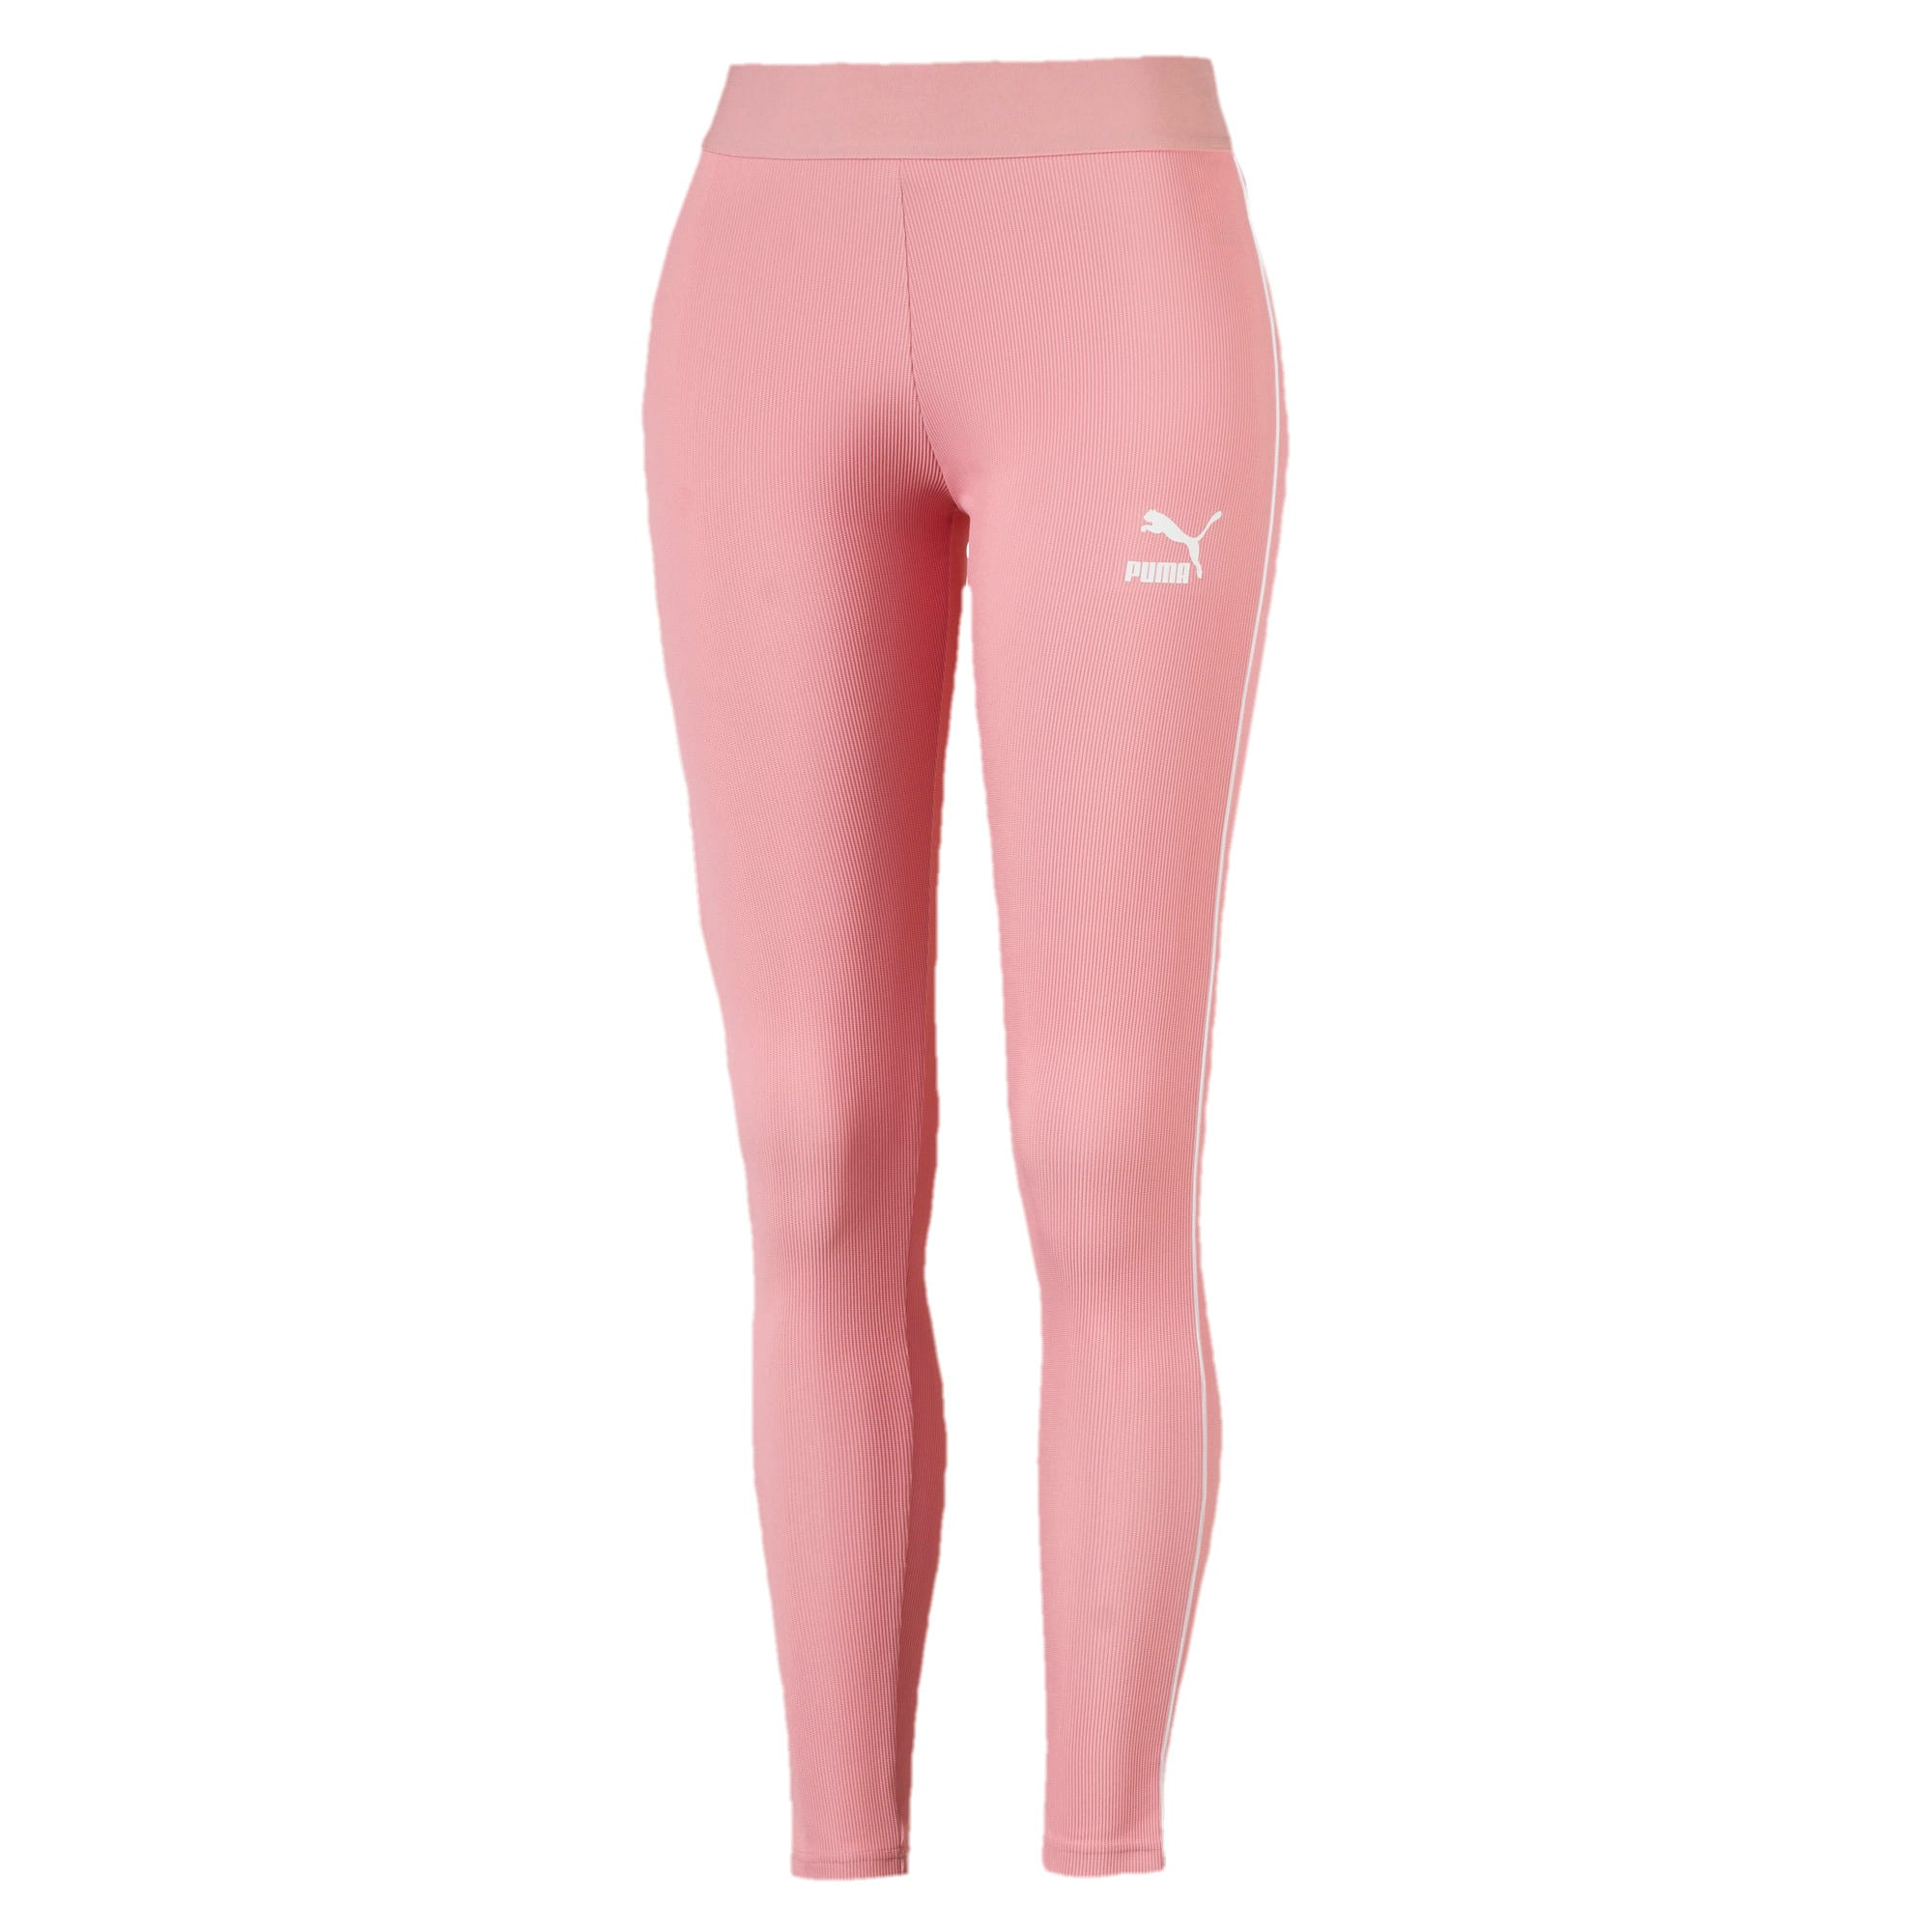 Thumbnail 1 of Classics Rib Women's Leggings, Bridal Rose, medium